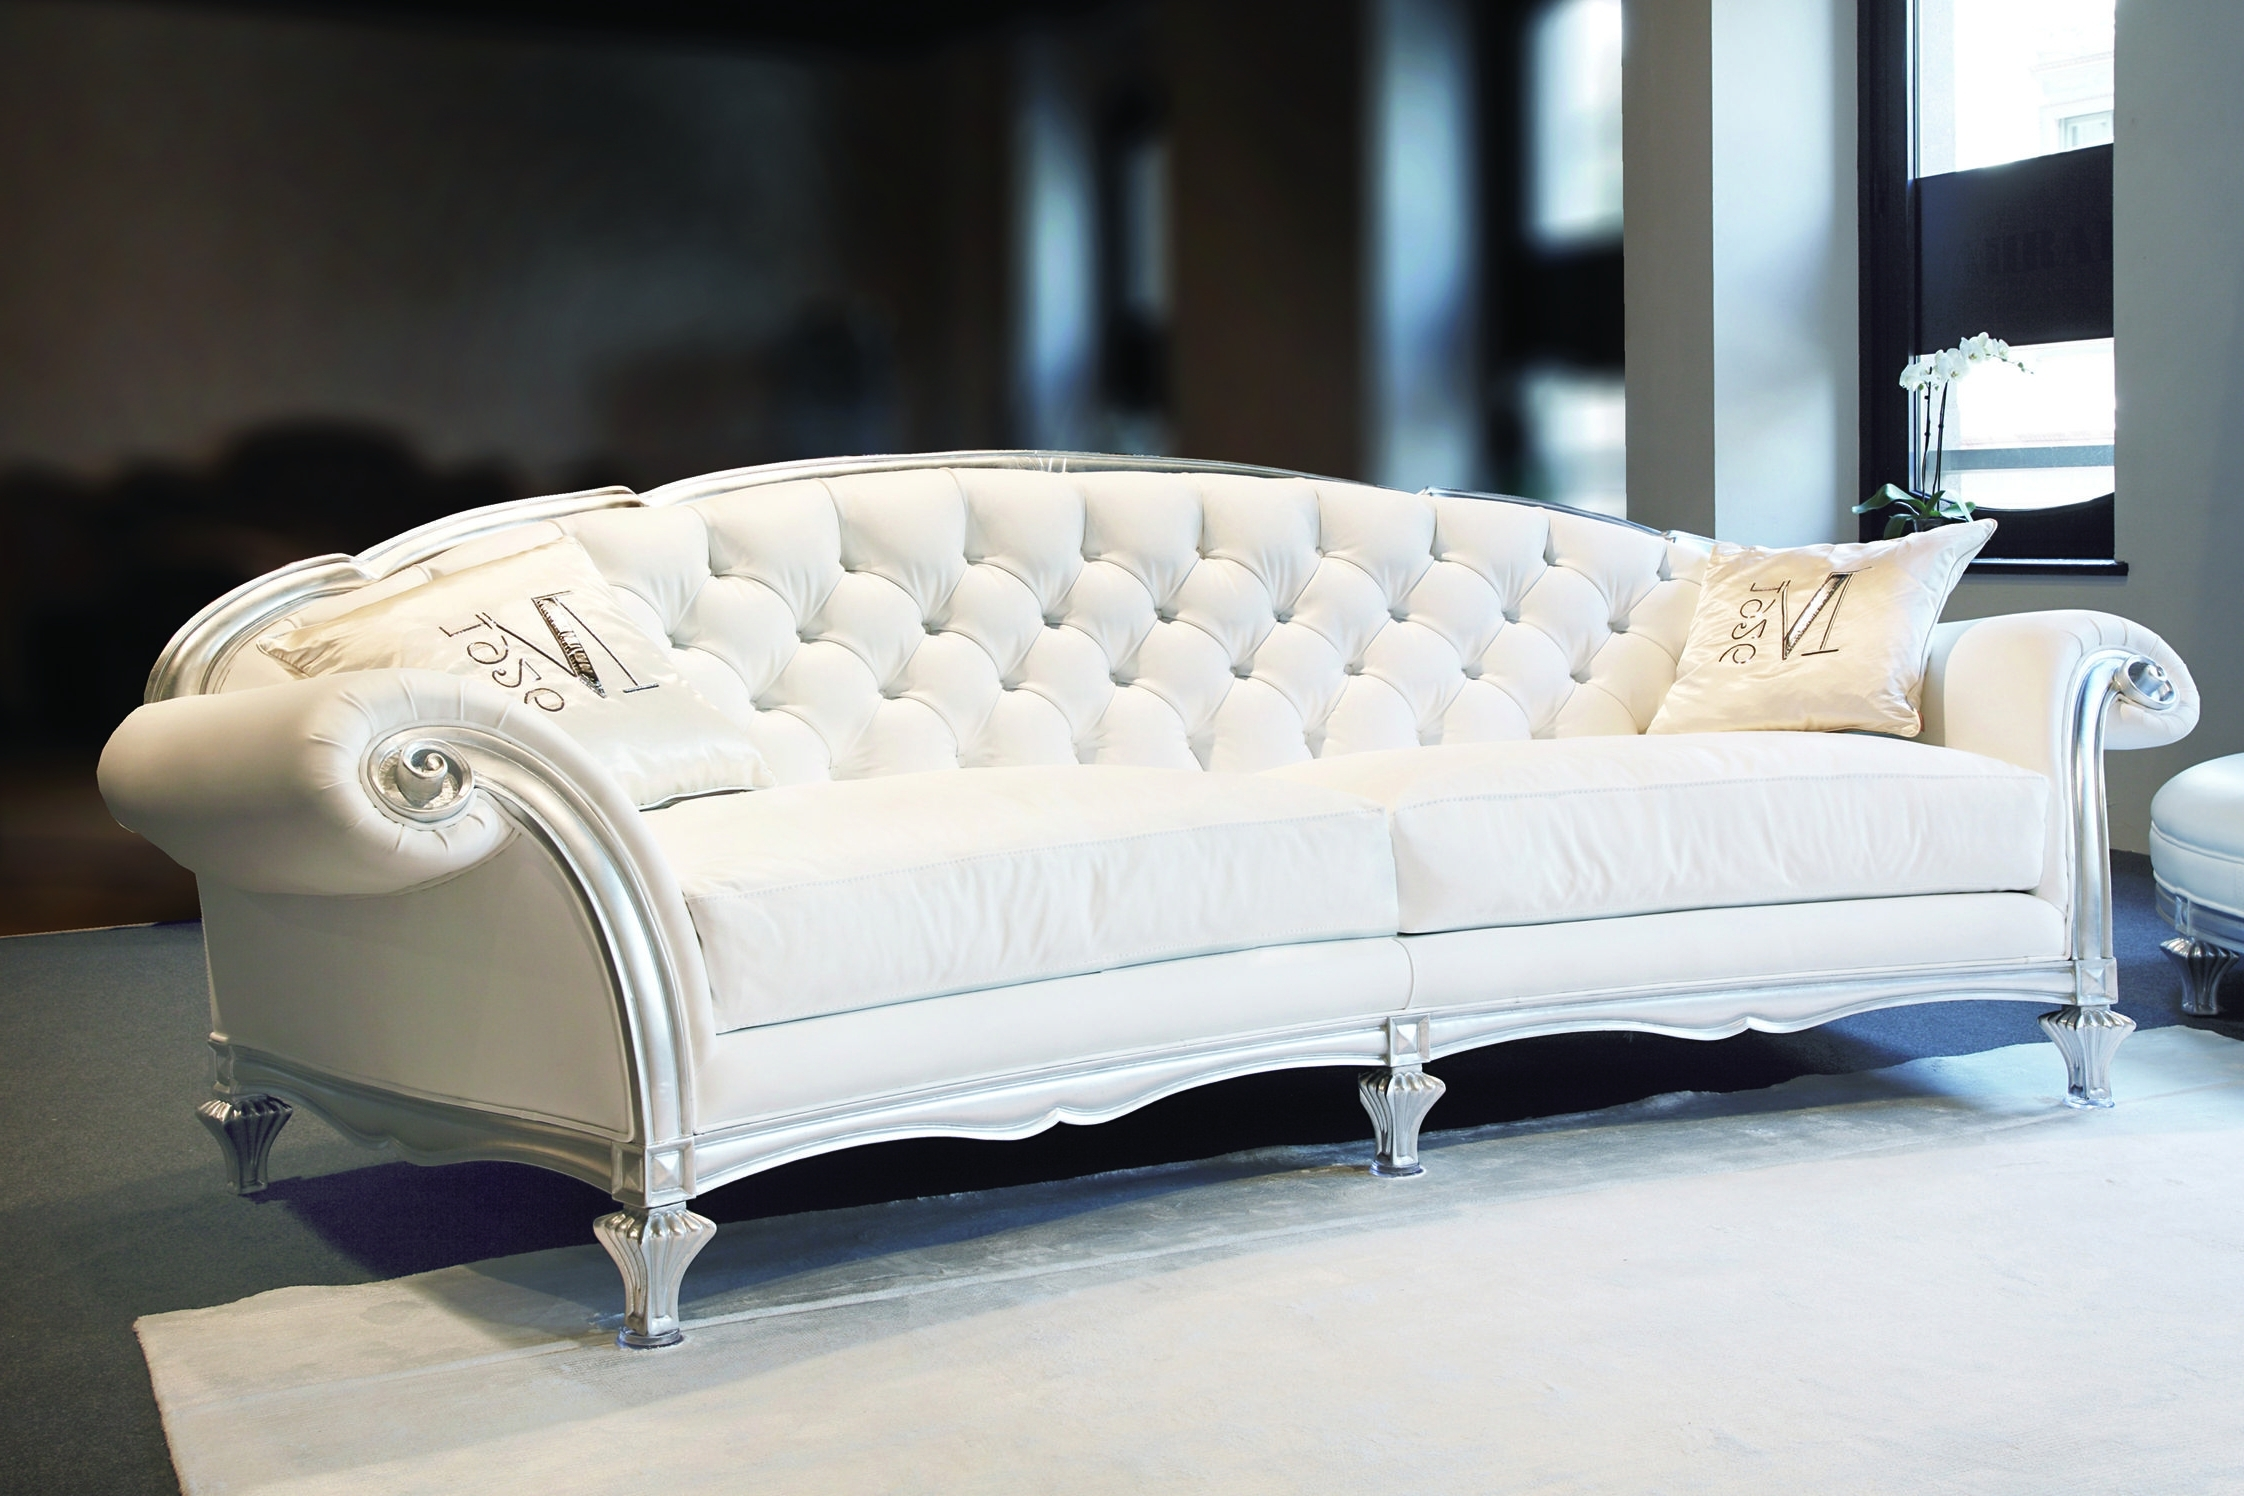 4 Seat Leather Sofas With Regard To Favorite Blossom 4 Seater Sofa Covering As Seen: Leather Art. Nuvola Col (Gallery 17 of 20)